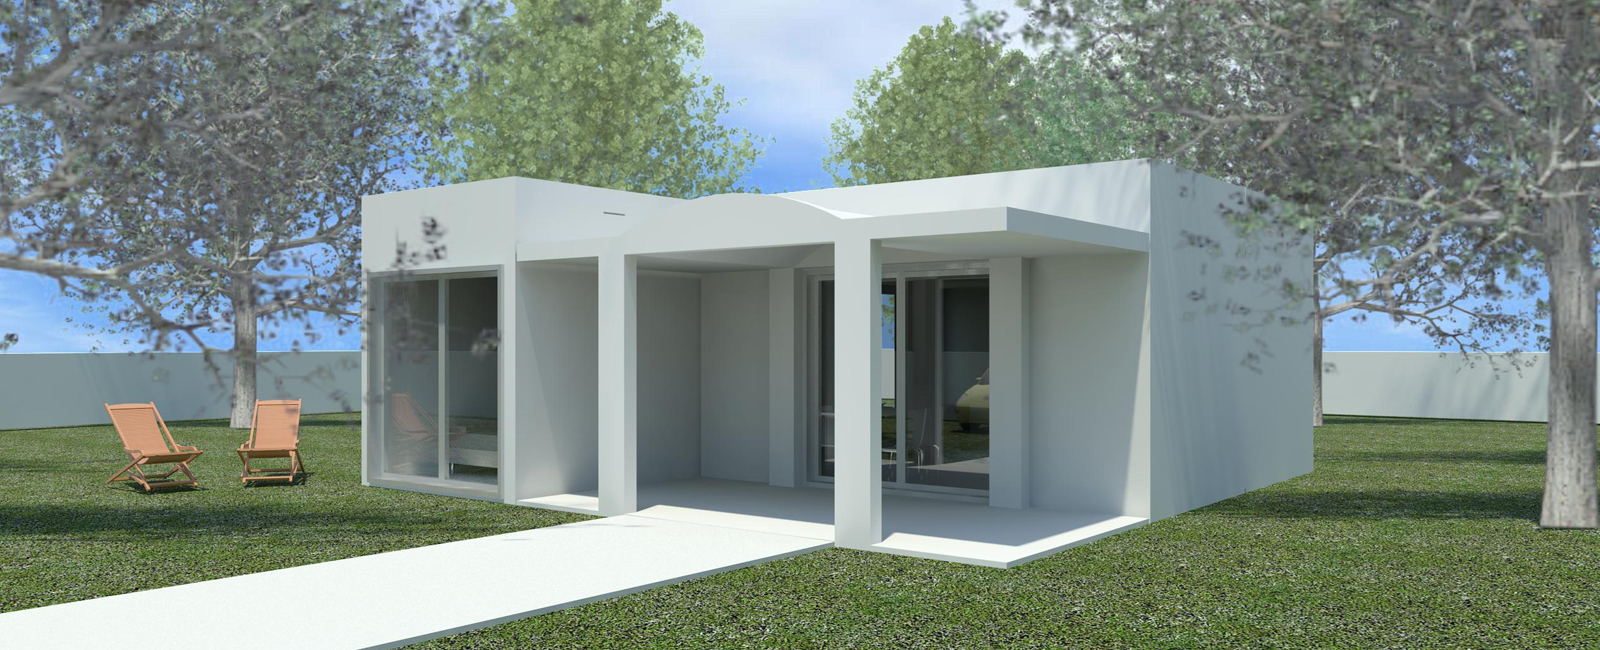 Casas prefabricadas de hormigon originales obox housing for Construccion de casas precios